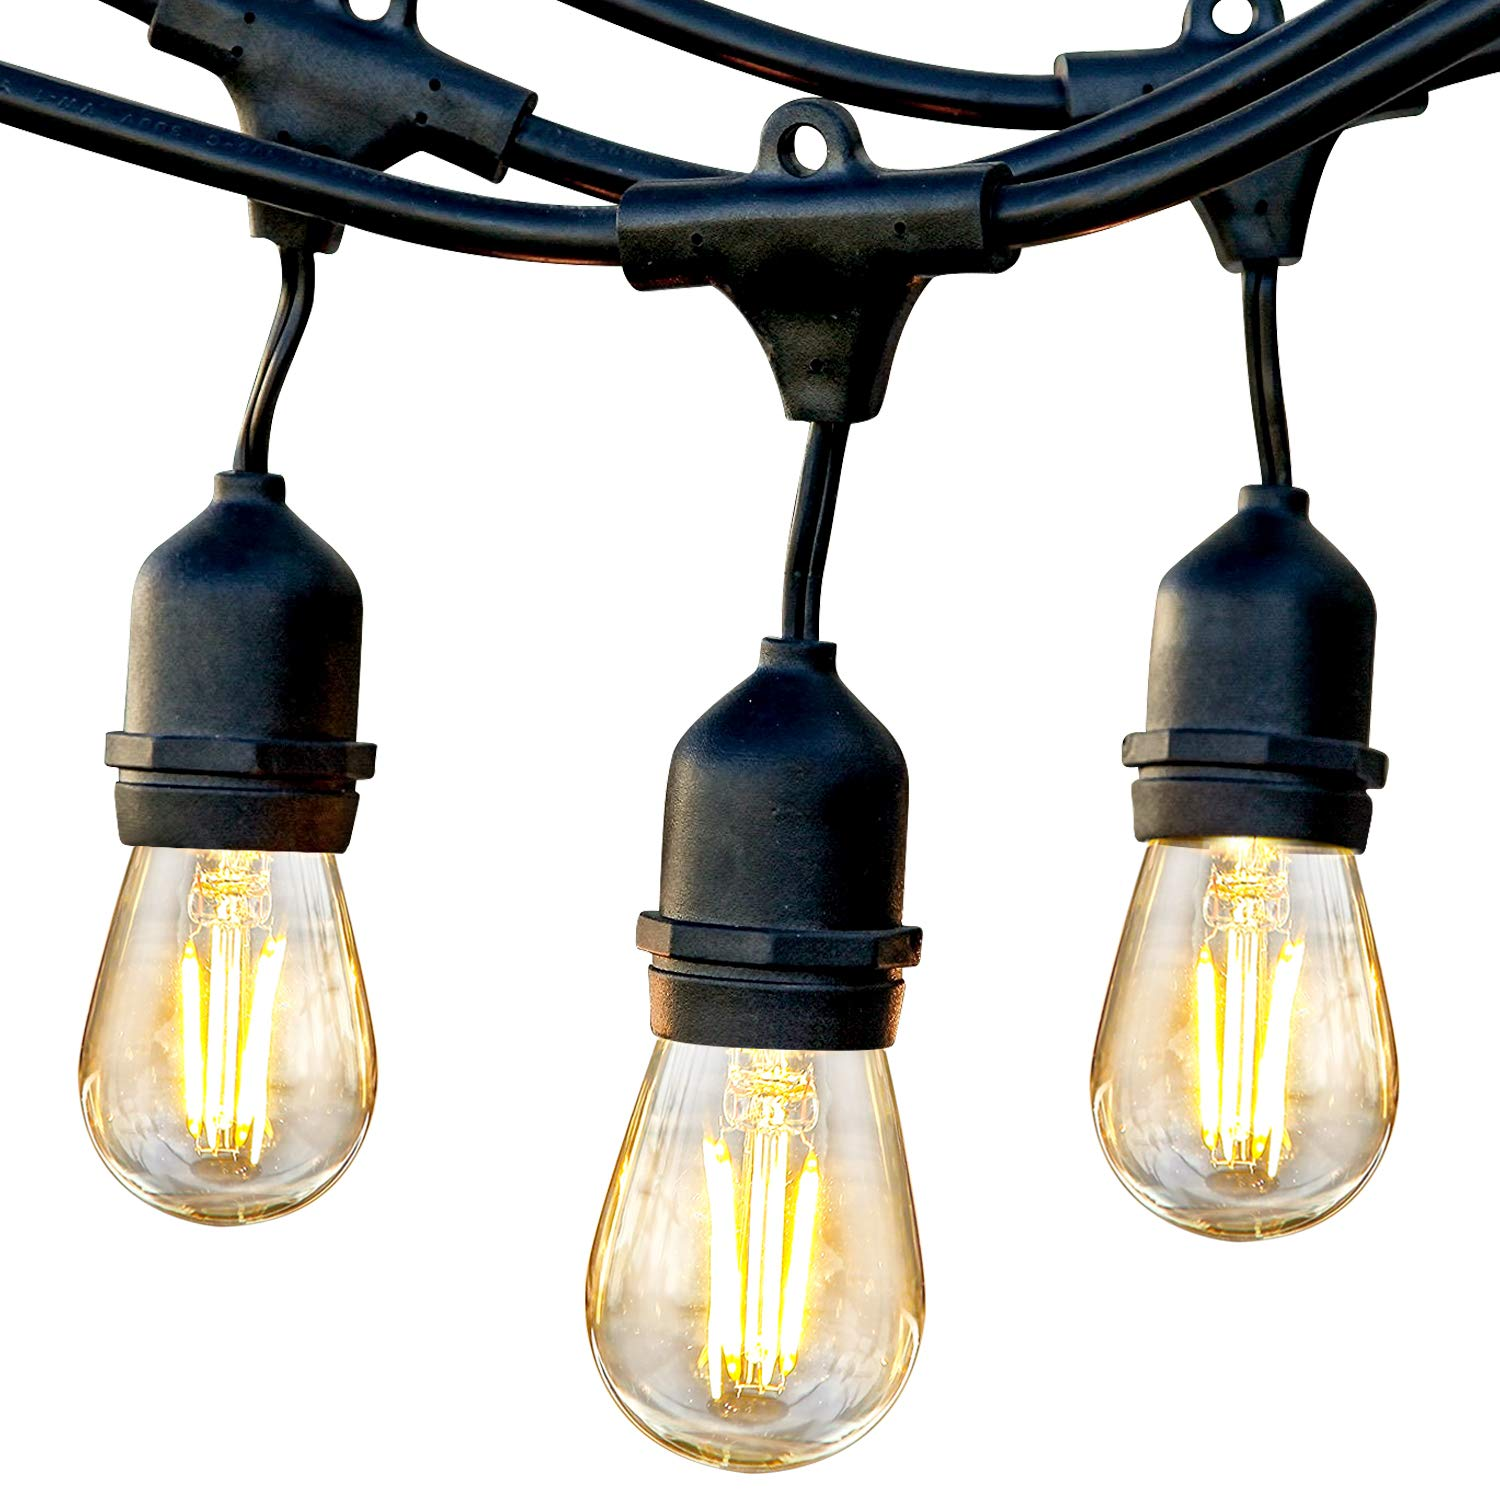 Brightech Ambience Pro - Waterproof LED Outdoor String Lights - Hanging, Dimmable 2W Vintage Edison Bulbs - 24 Ft Commercial Grade Patio Lights Create Cafe Ambience In Your Backyard - Soft White by Brightech